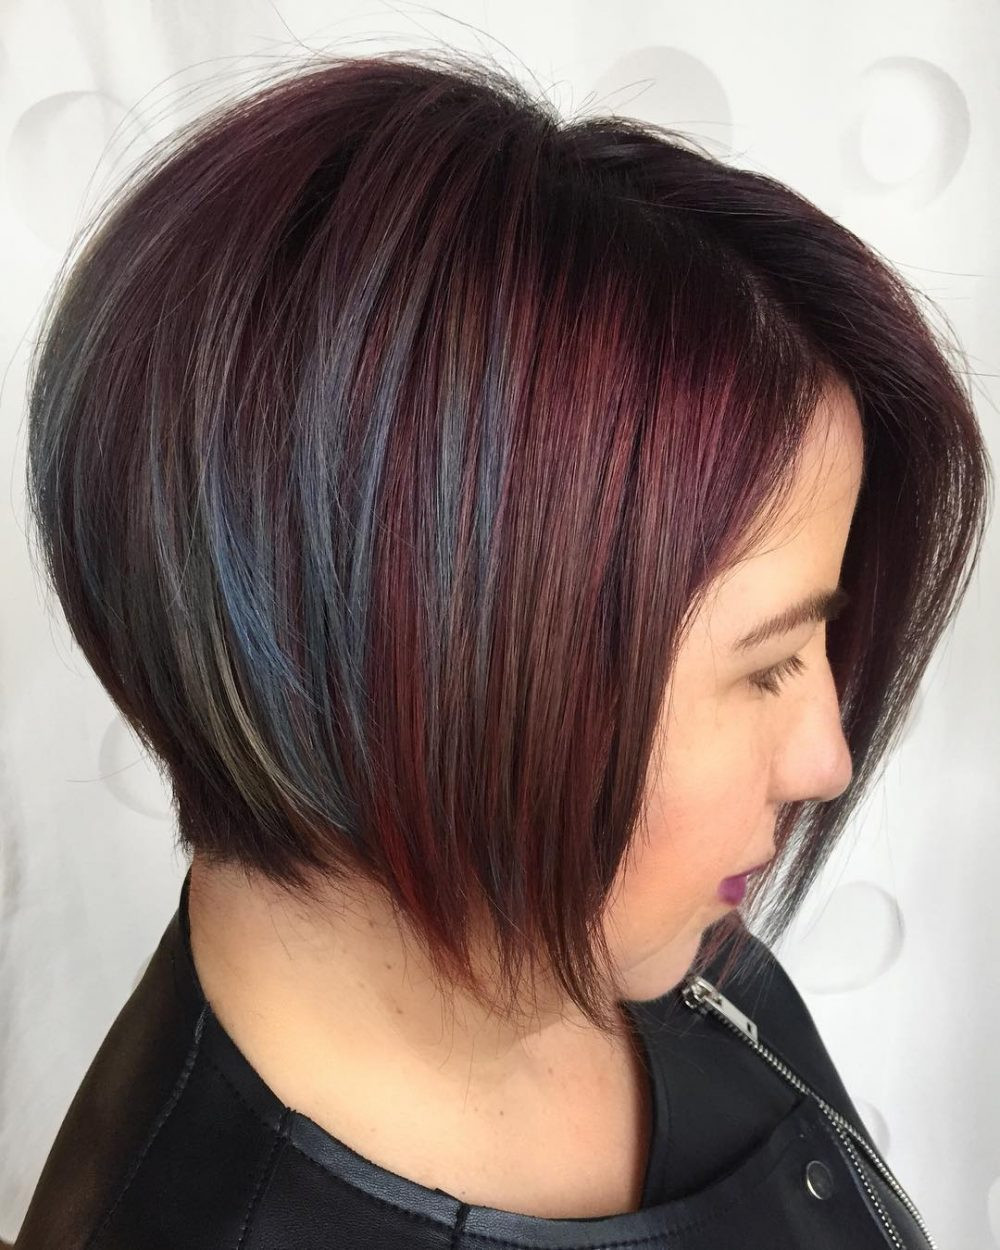 Best ideas about Haircuts For Girls With Thick Hair . Save or Pin 21 Classy Short Haircuts & Hairstyles for Thick Hair Sensod Now.